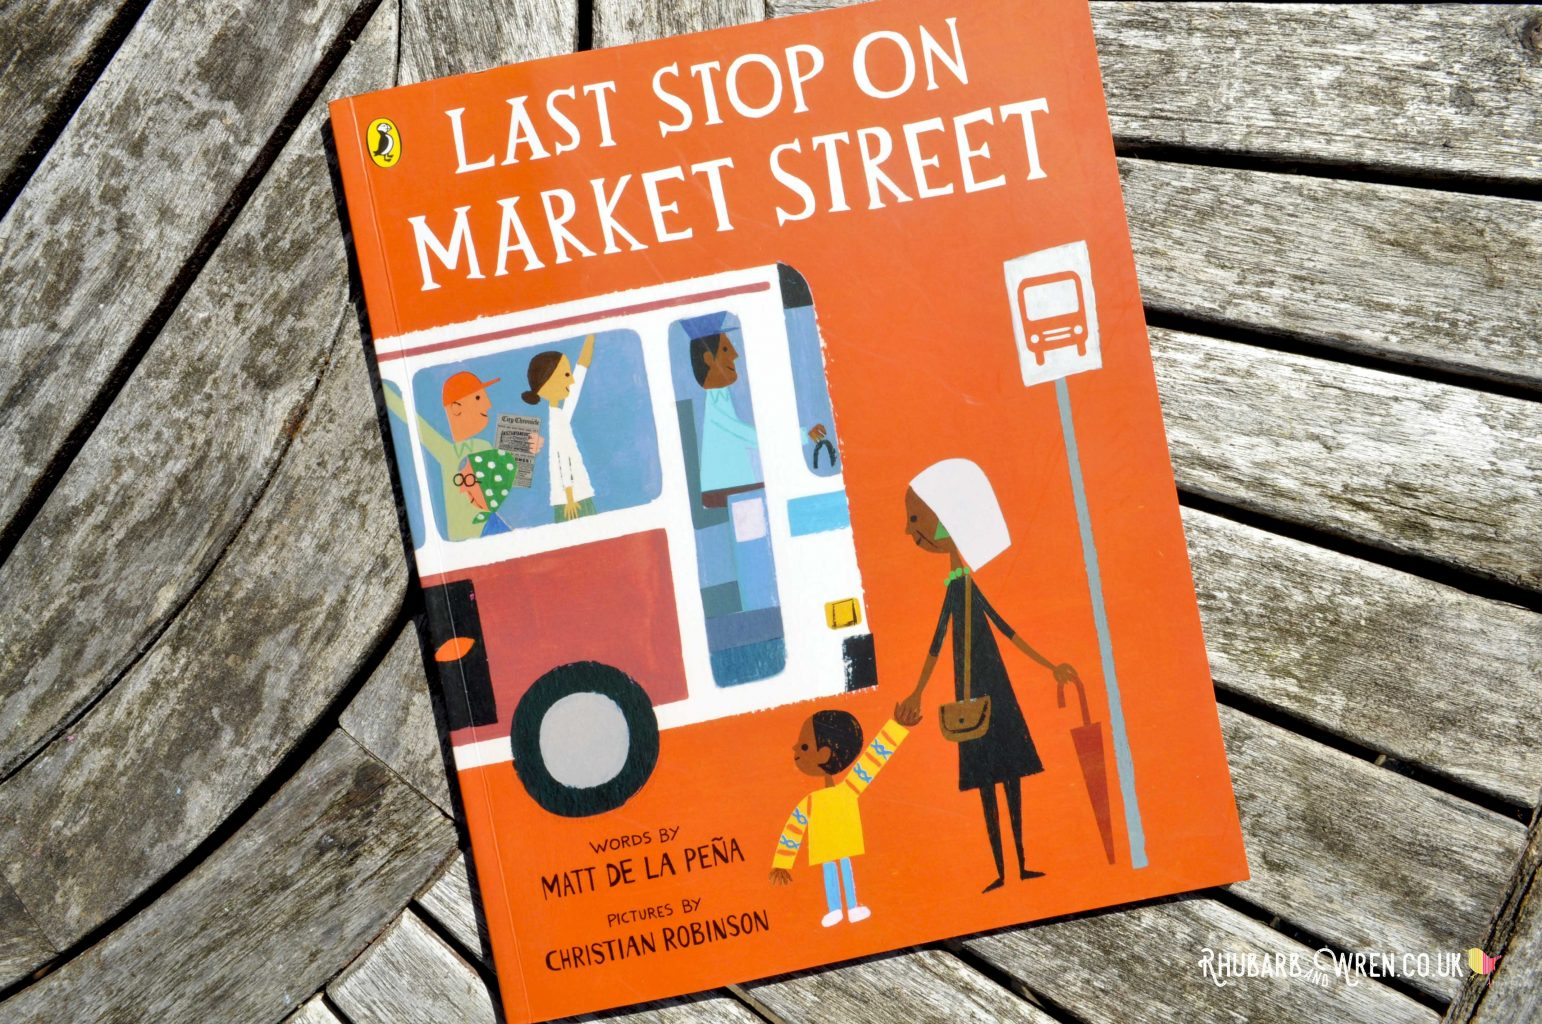 Last Stop on Market Street - picture book by Matt de la Pena and Christian Robinson